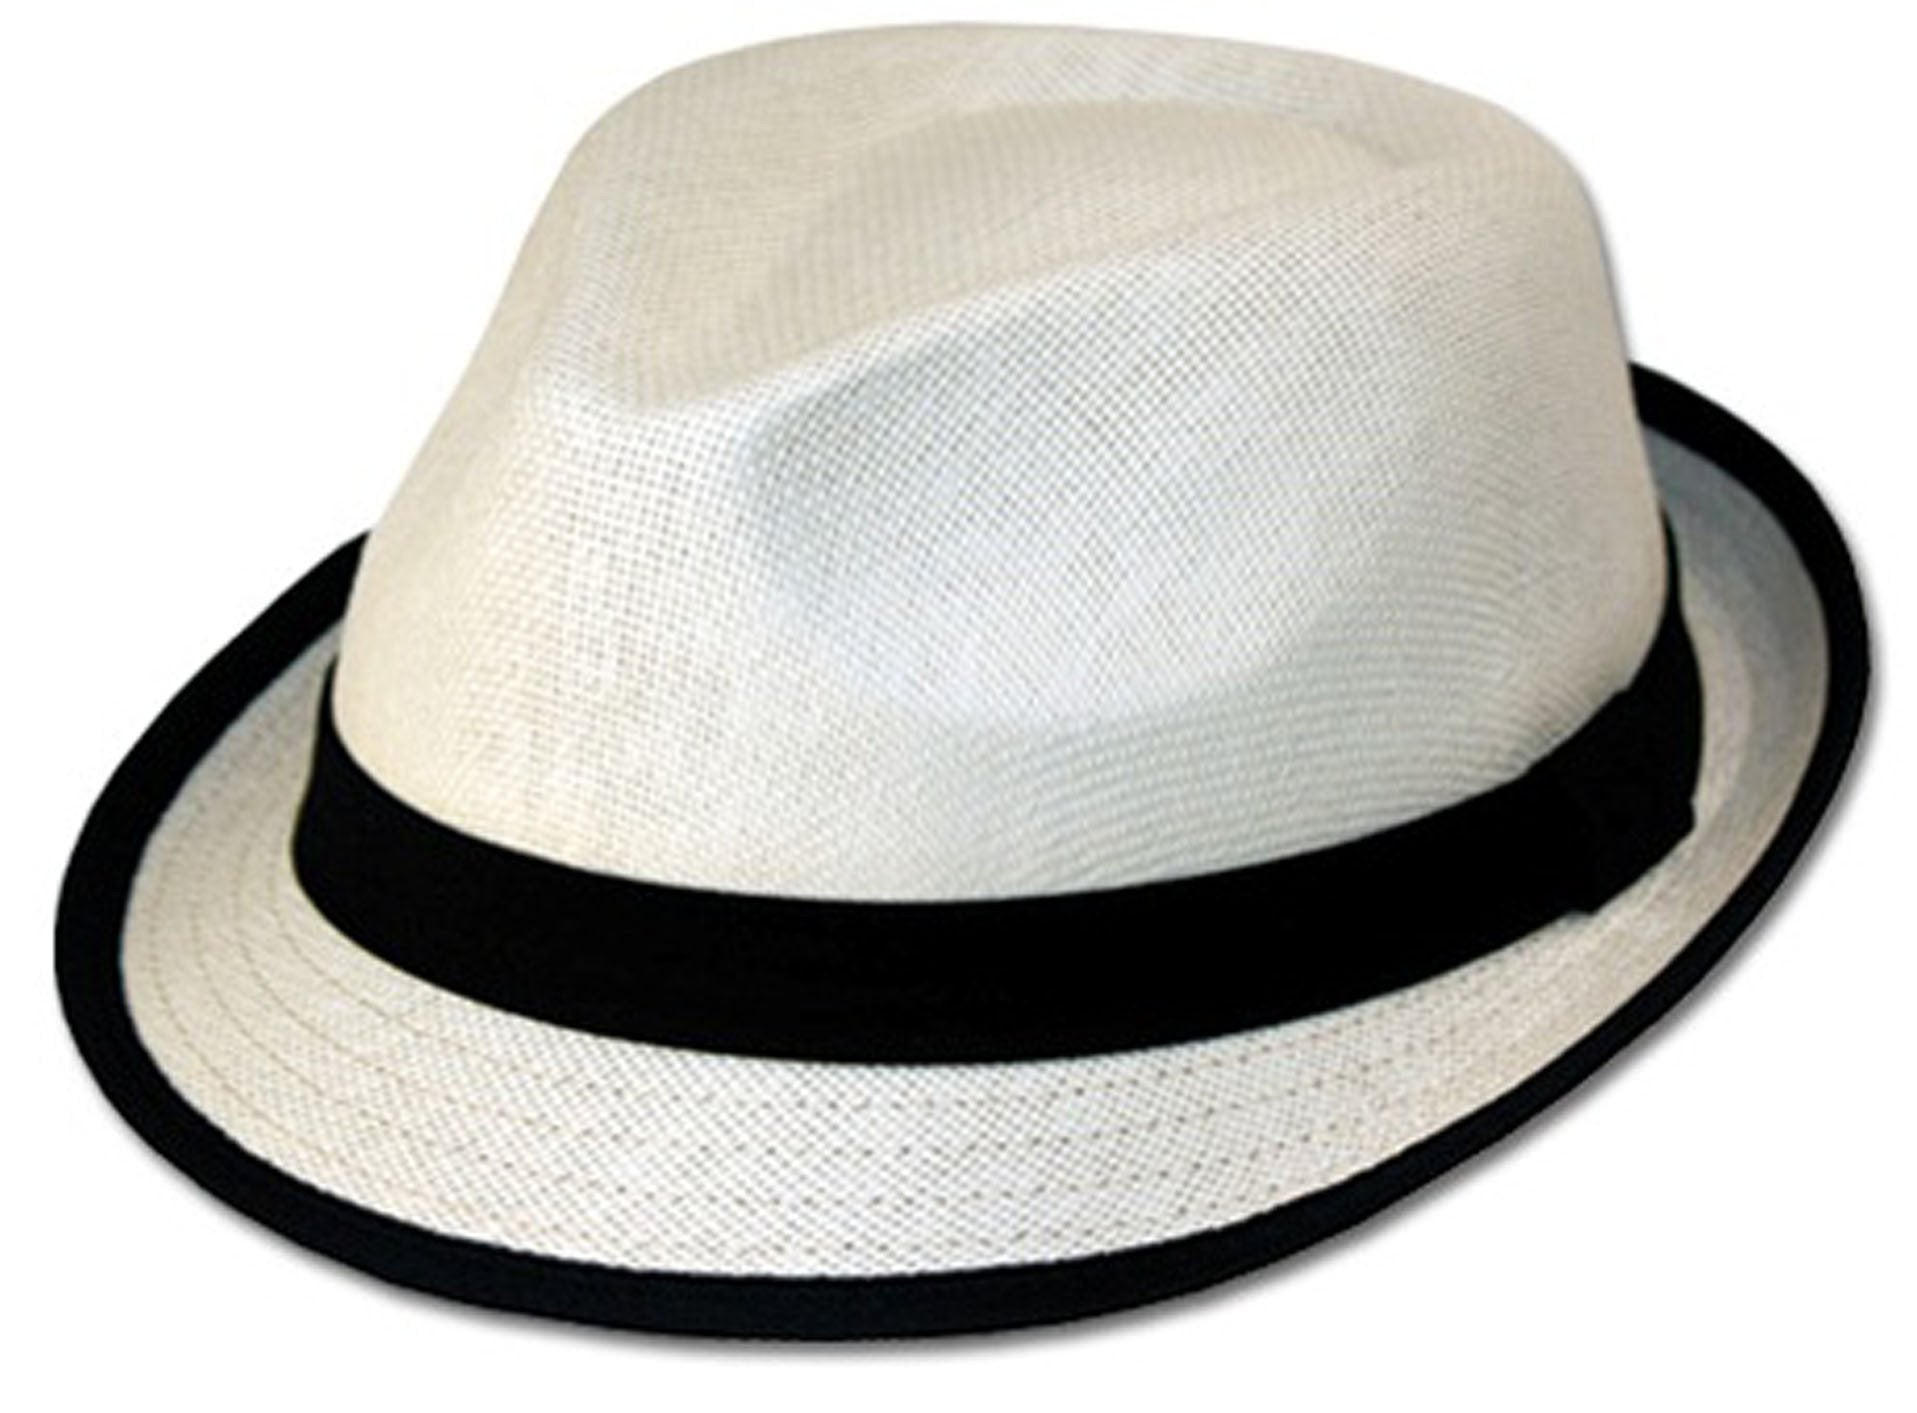 46254a5d56a8f Unisex Structured 100% Paper Straw Black Band Fedora Hat - Sakkas Store